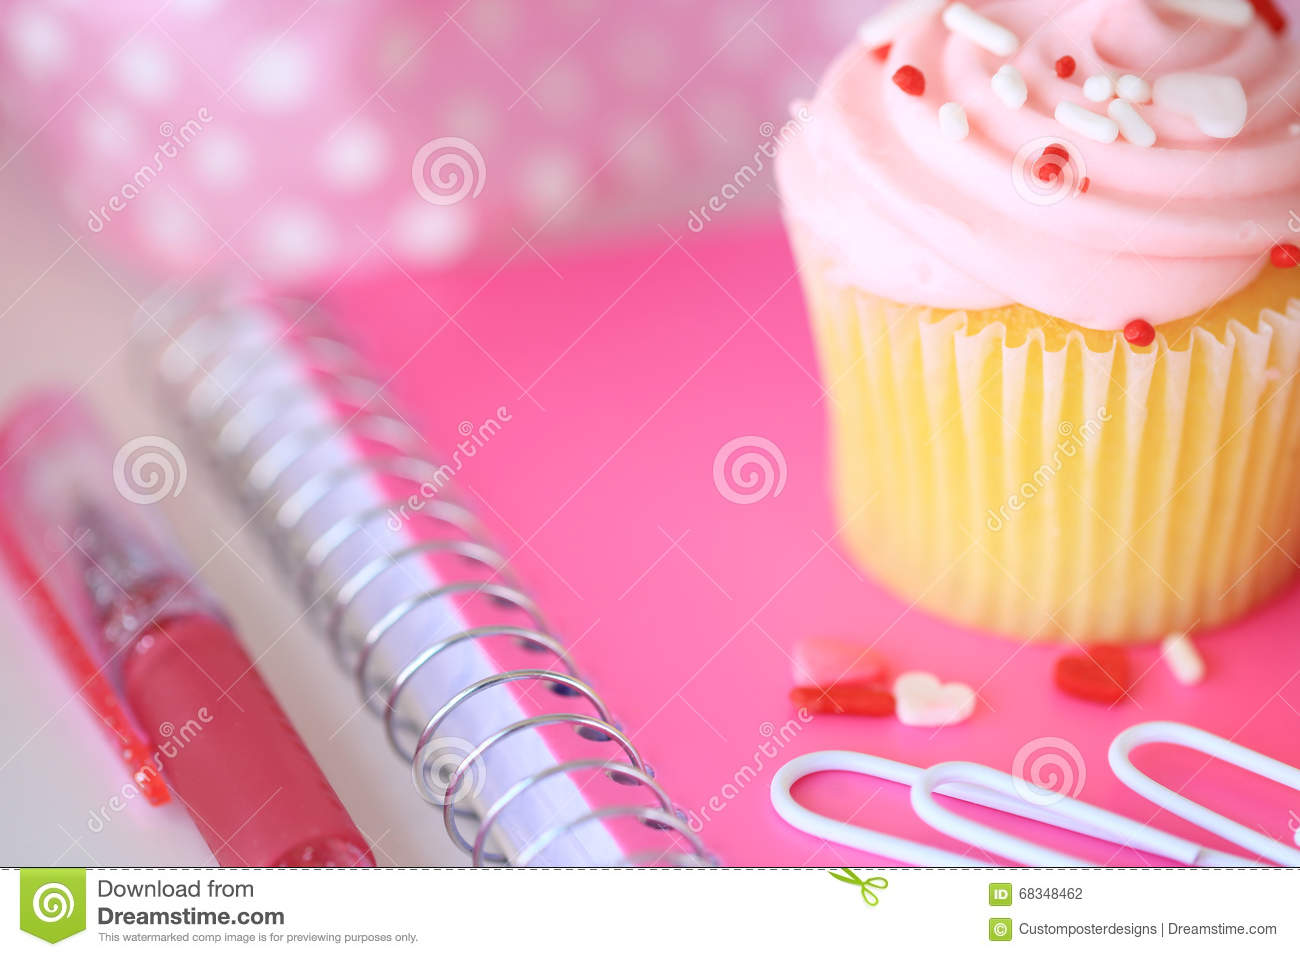 Download A Pink Cupcake With Sprinkles, A Pink Notebook, Paperclips And A Pen. Stock Photo - Image of concept, cupcake: 68348462